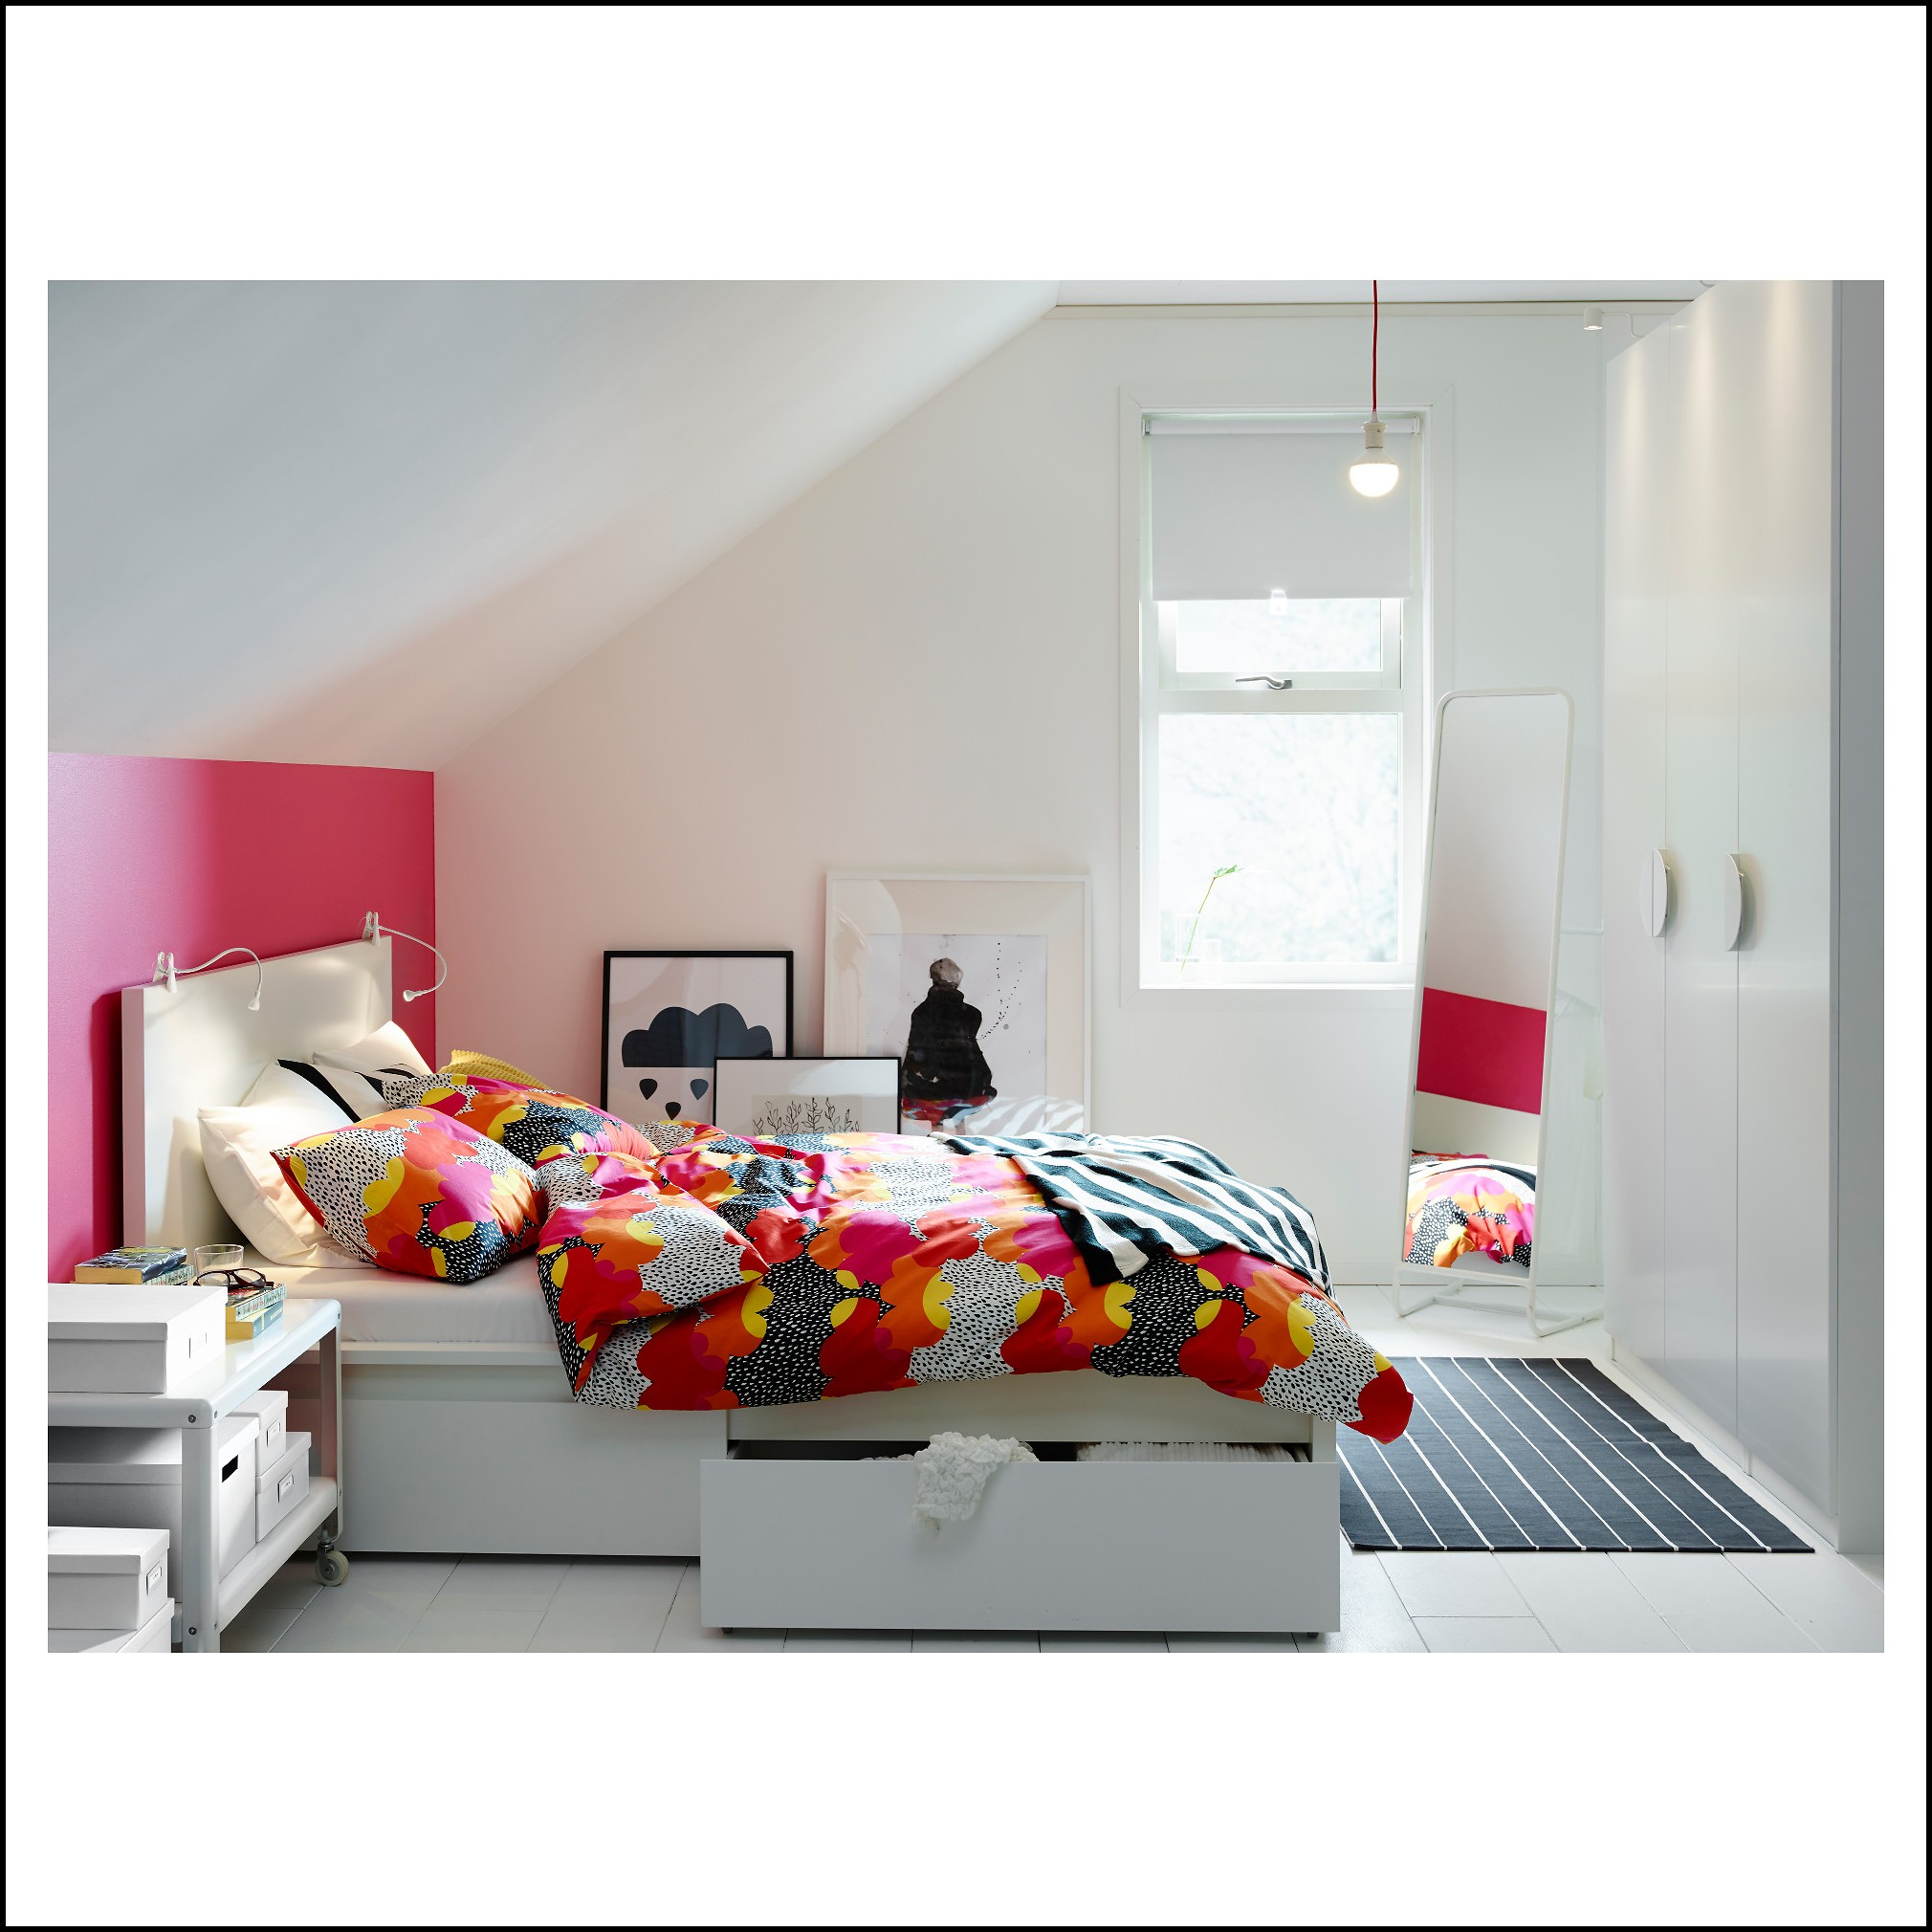 ikea malm bett 140x200 hoch betten house und dekor galerie zk13j92wdg. Black Bedroom Furniture Sets. Home Design Ideas